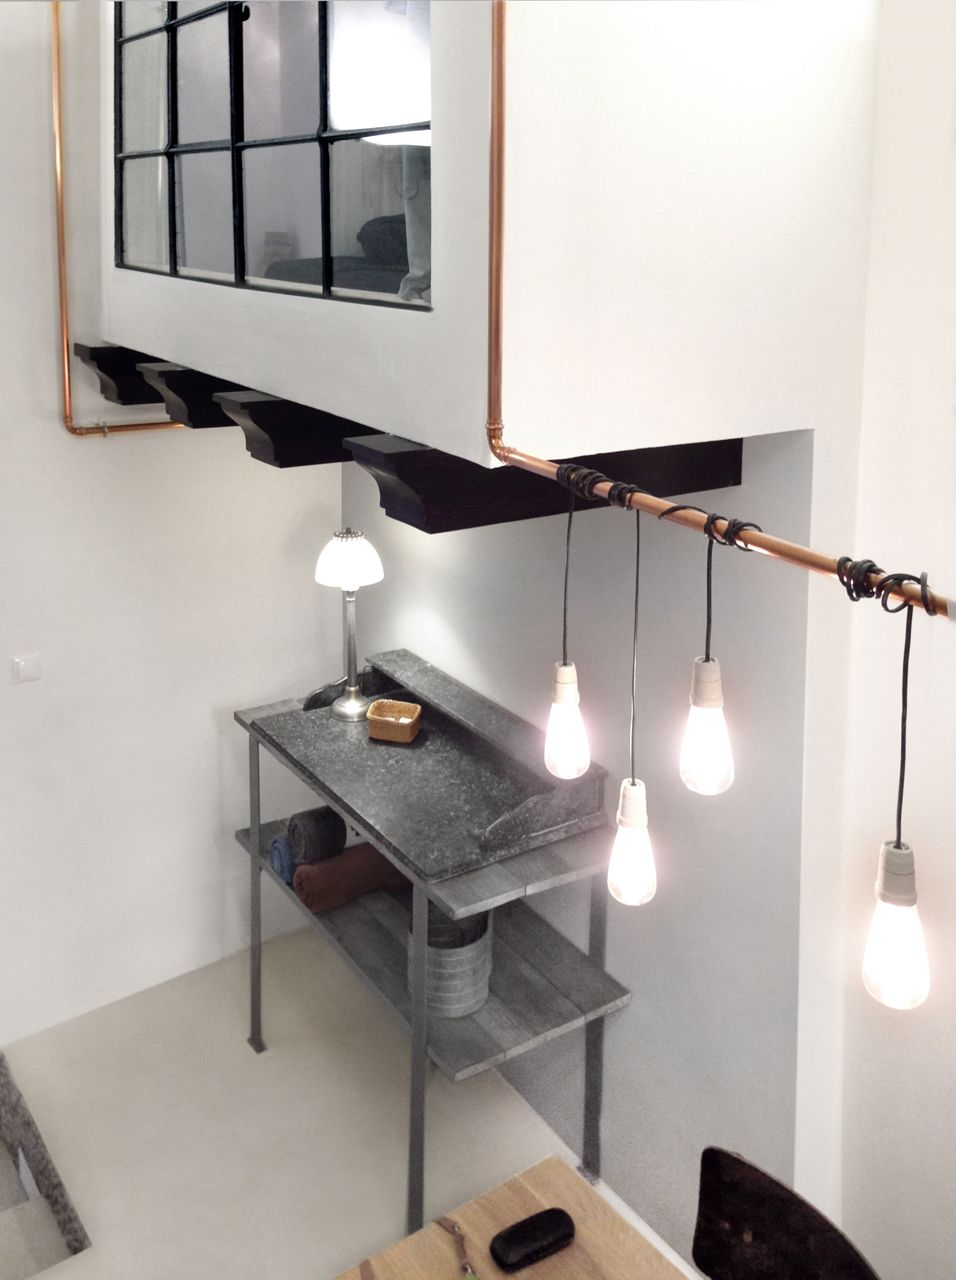 Men Budapesti Laksok Stt Belvrosibl Napfnyes Otthon Wiring A Light Fixture Black Wire Tiny Contemporary Split Level Studio Apartment In Budapest Featuring Loads Of White Wooden Furniture Wires And Bit Glass